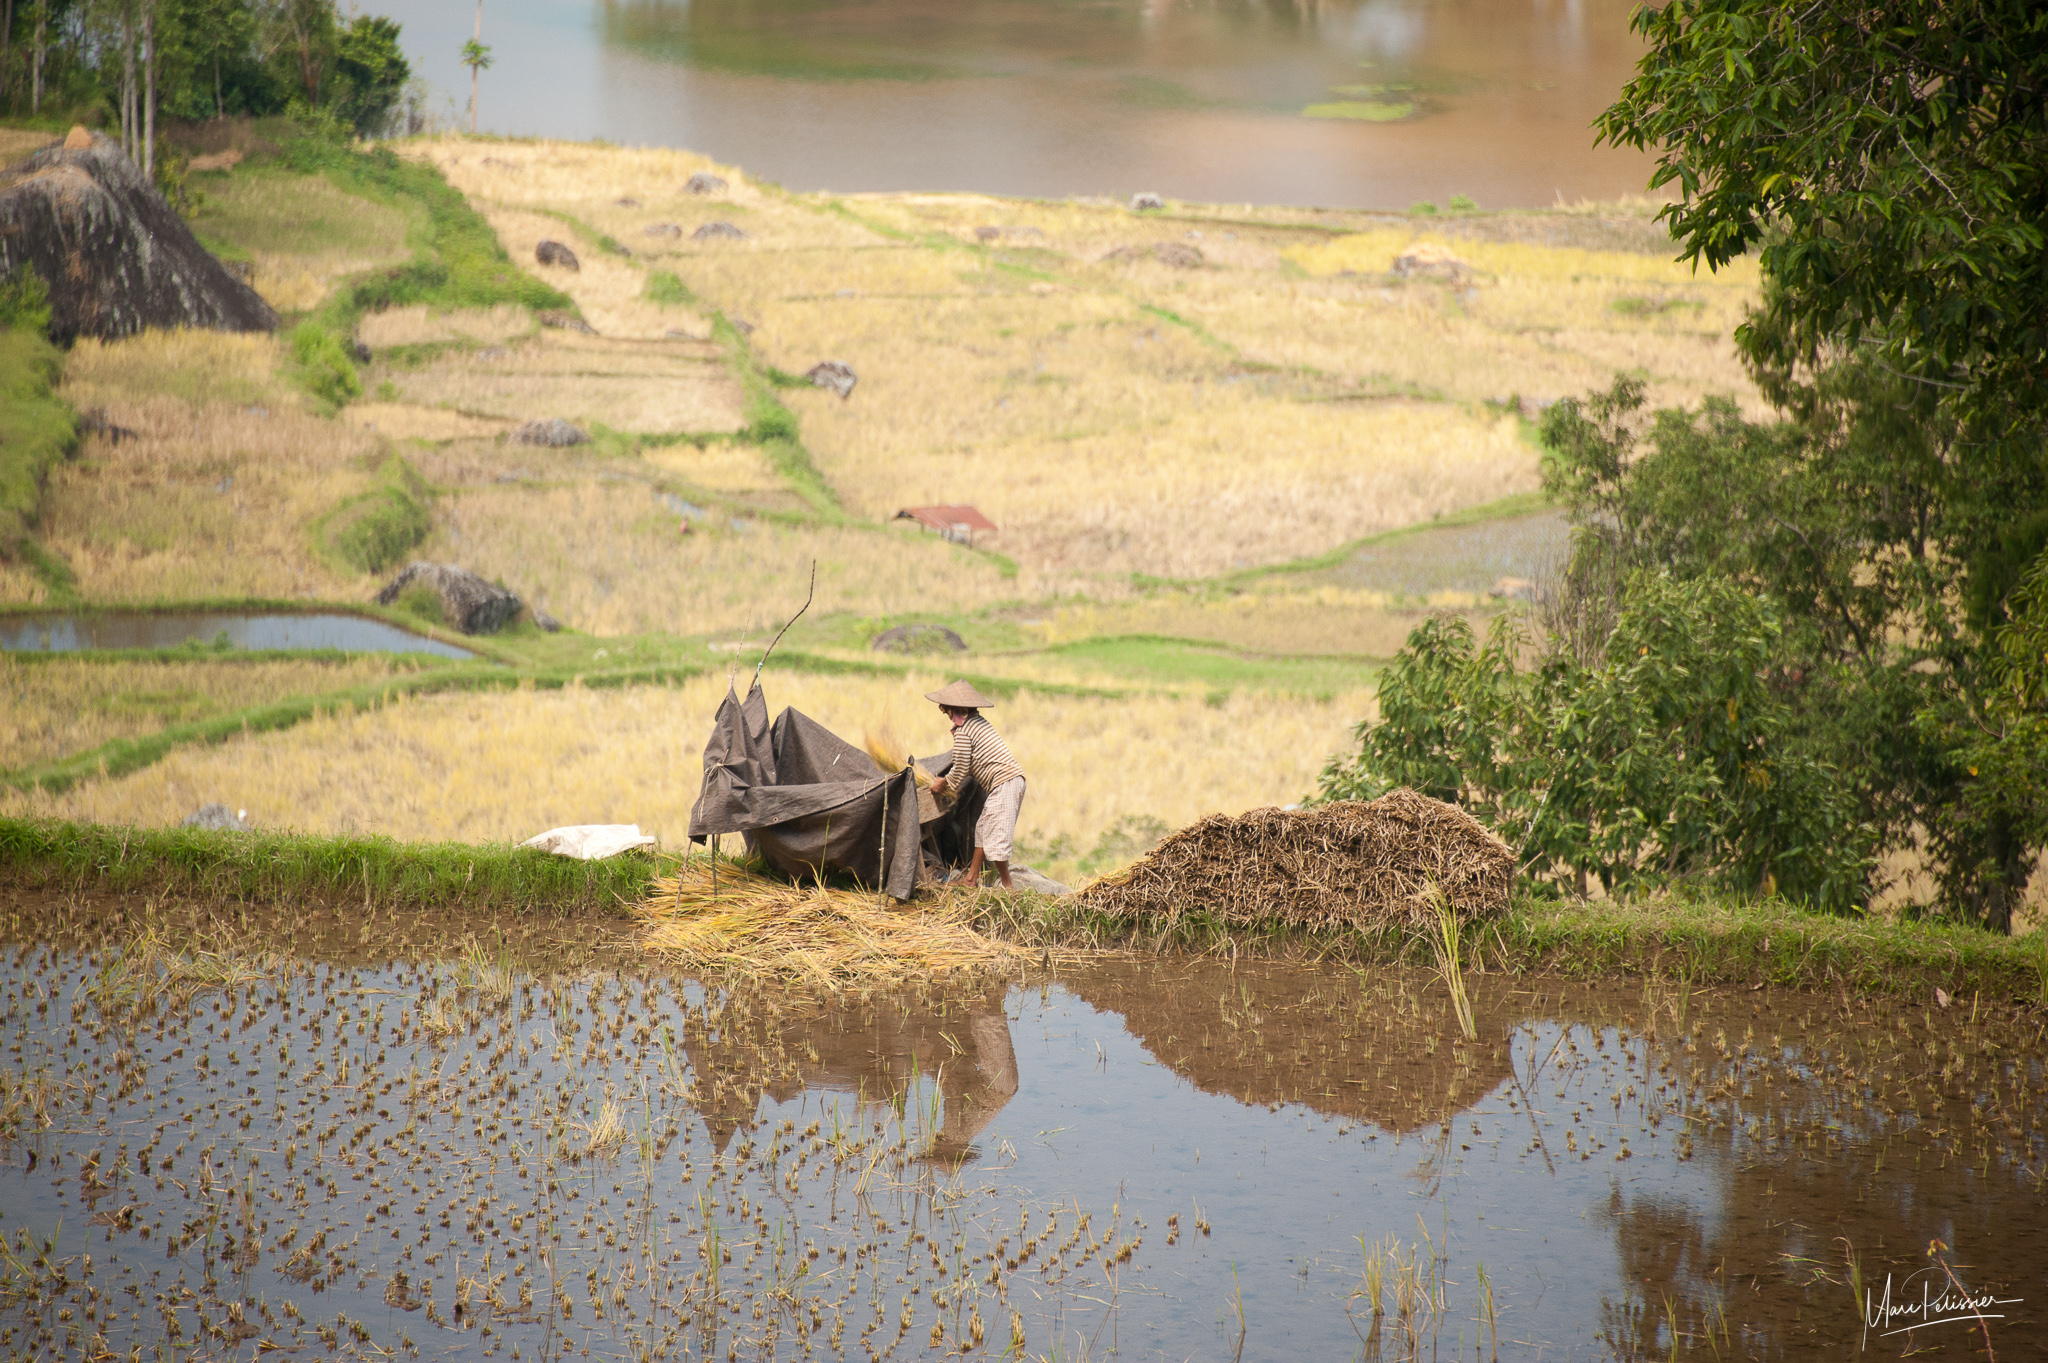 Rice work along the field, Indonesia